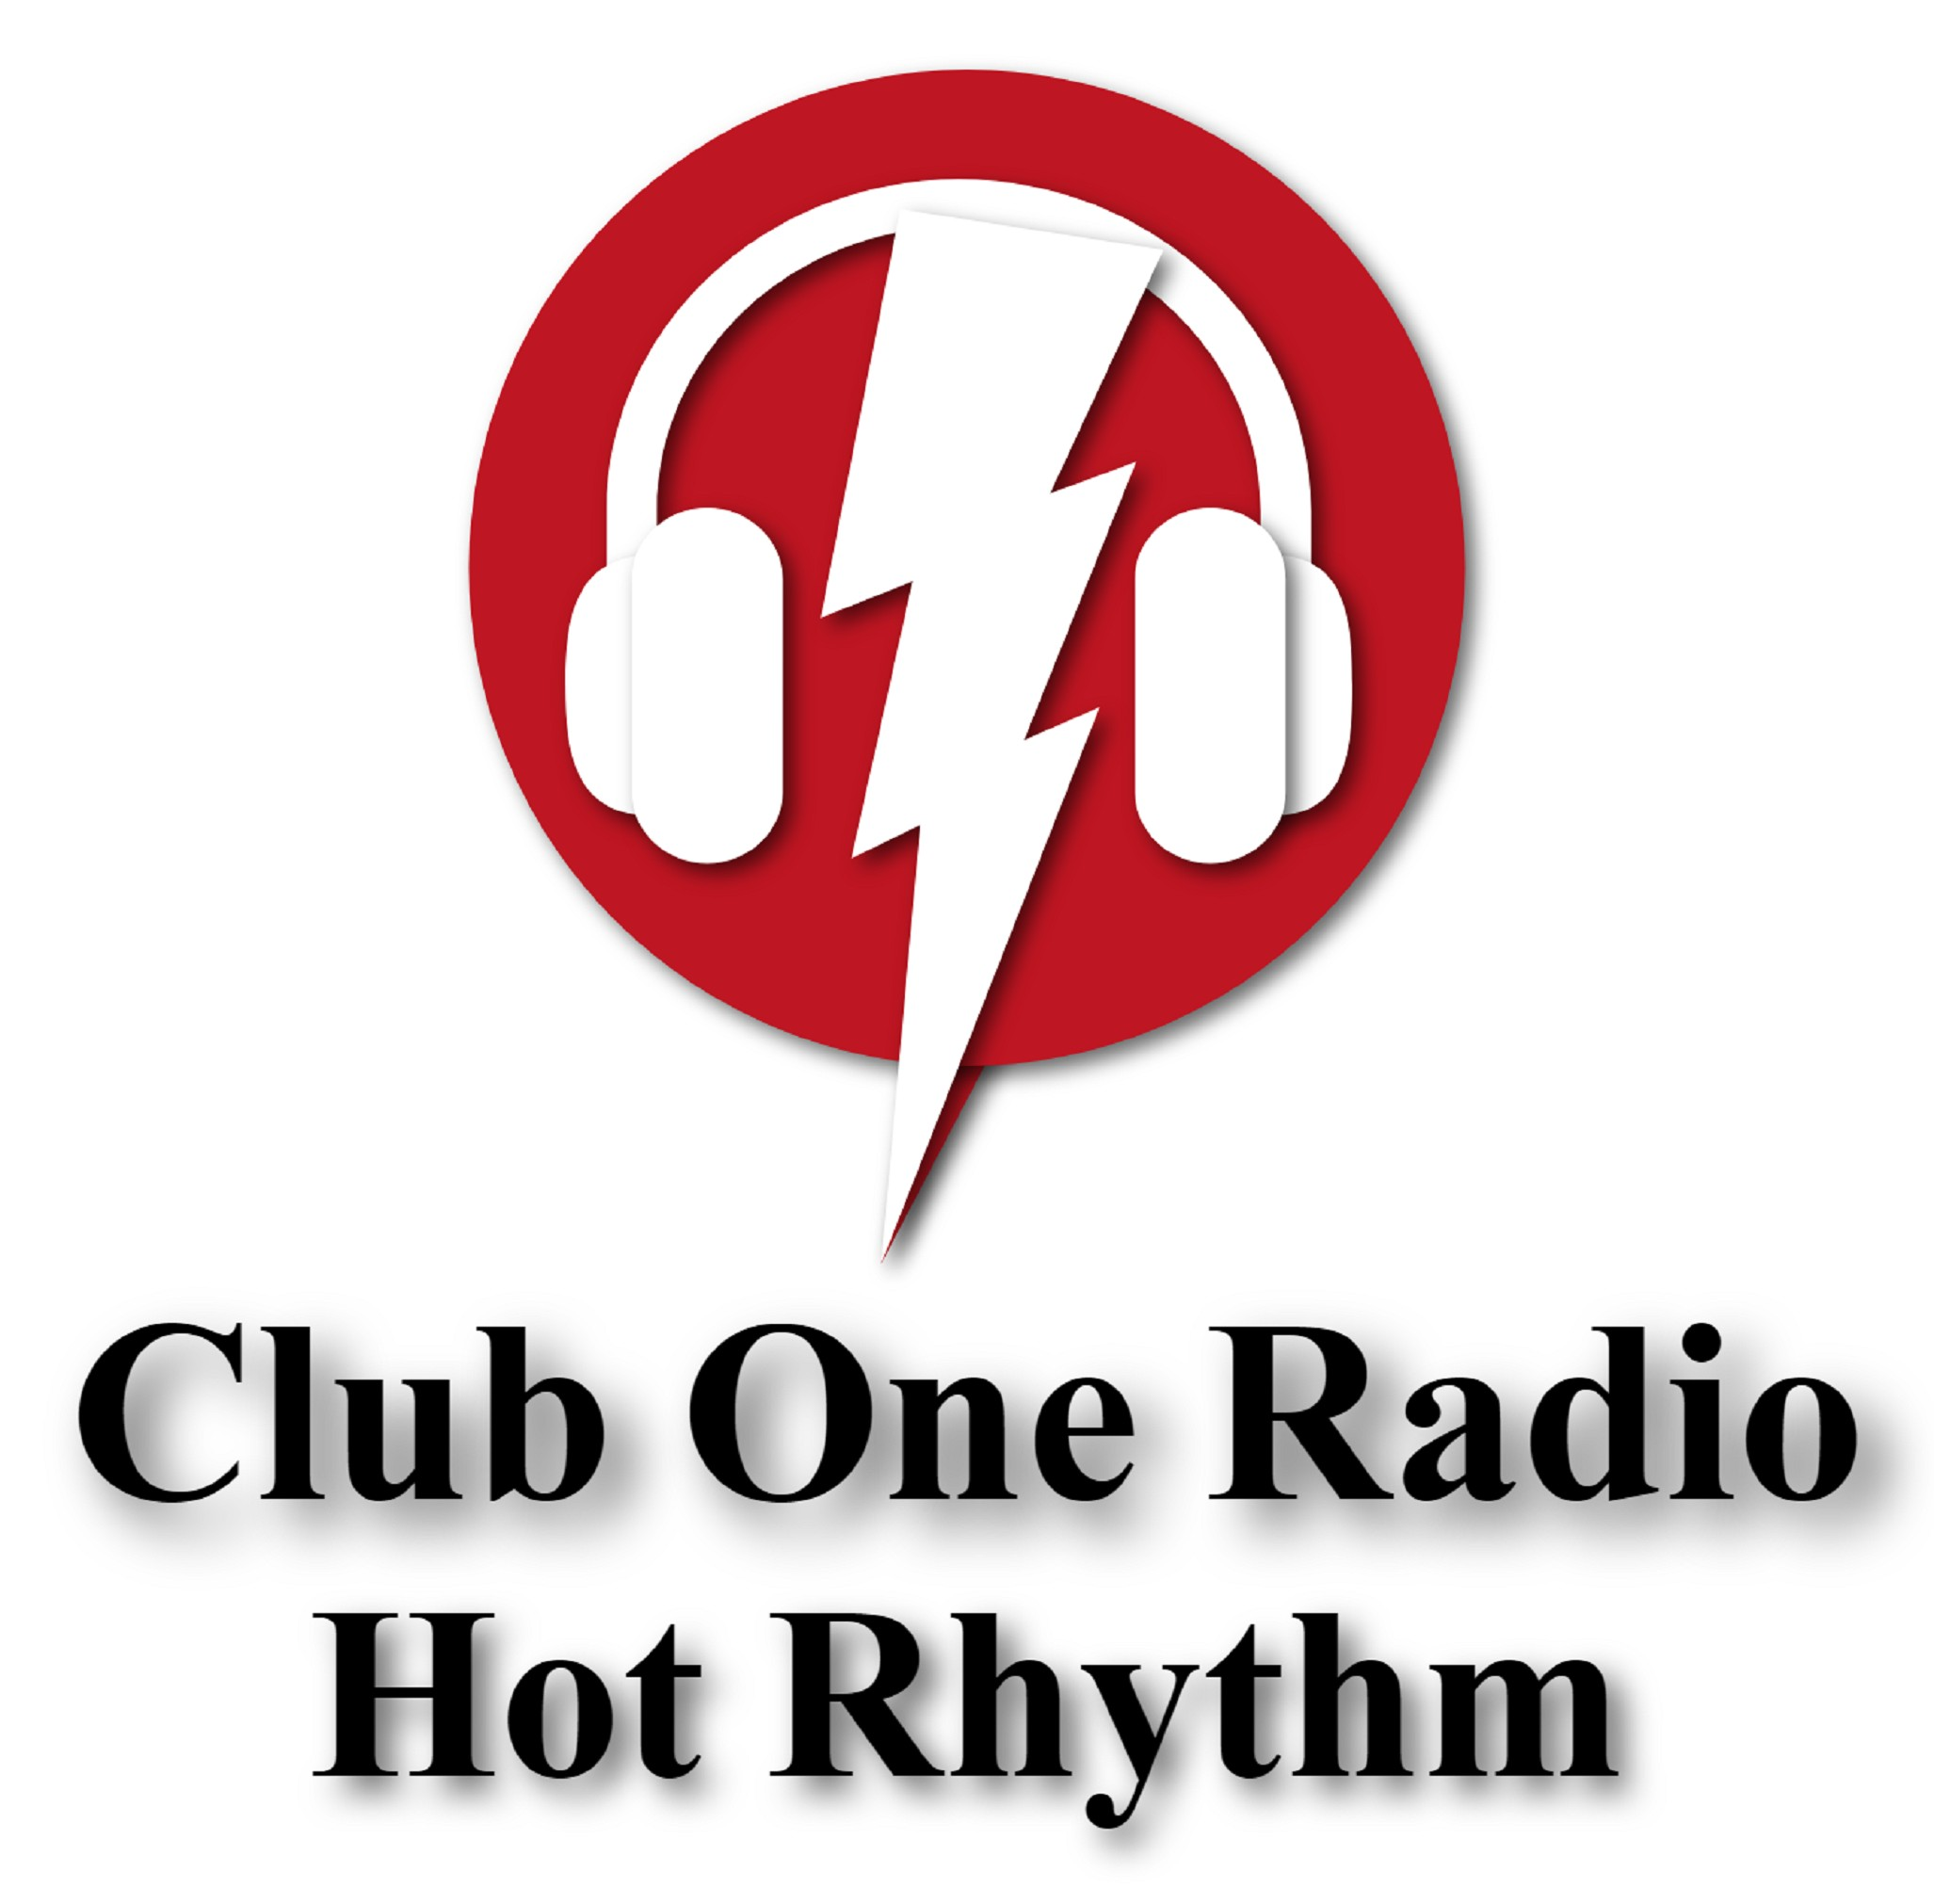 Club One Radio Hot Rhythm